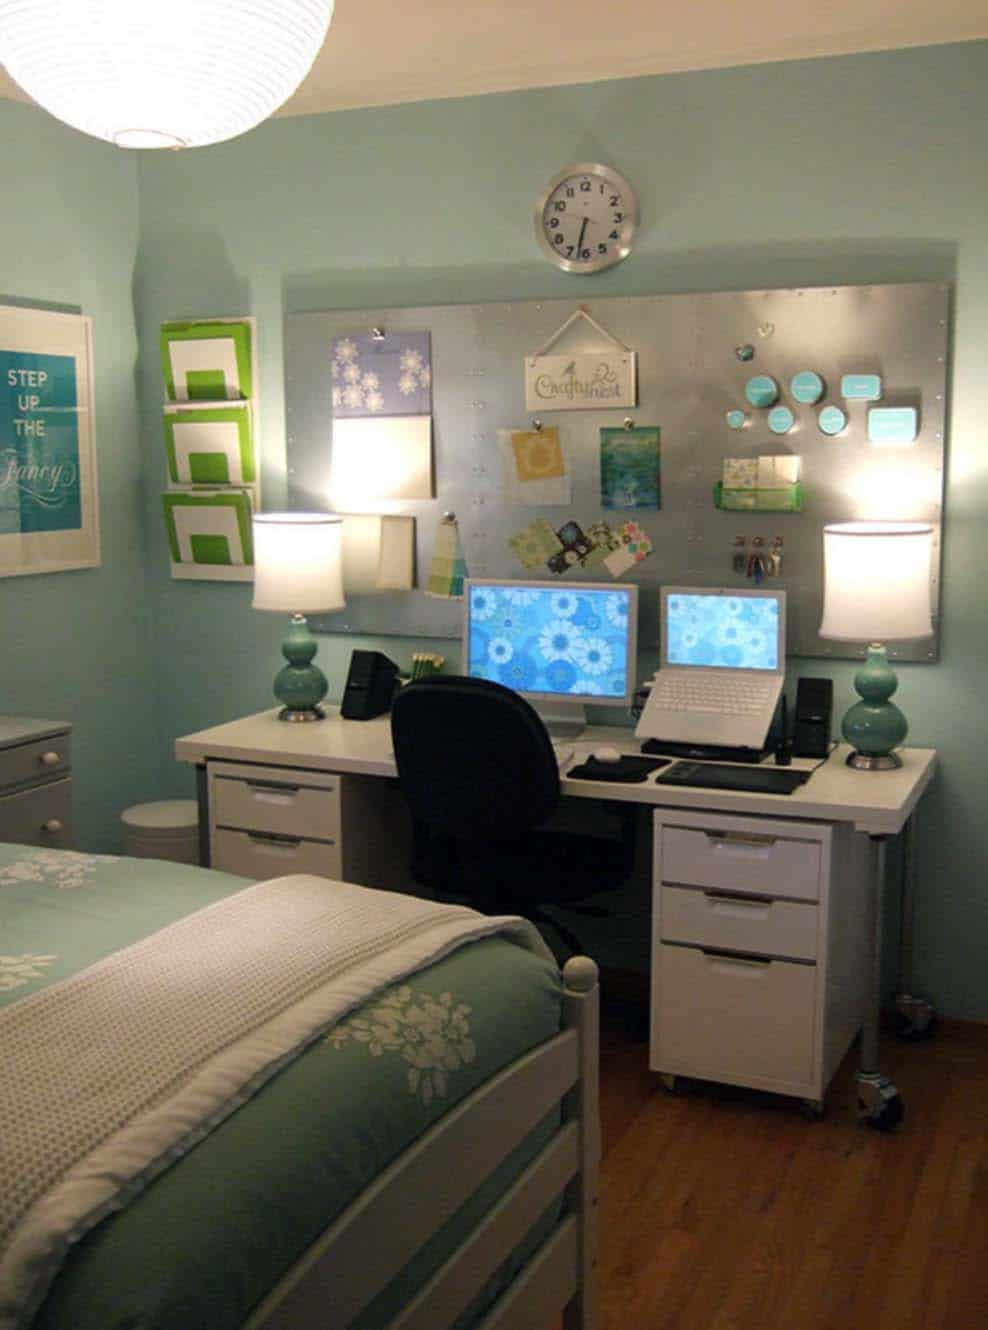 Home Office Room Design: 25 Fabulous Ideas For A Home Office In The Bedroom